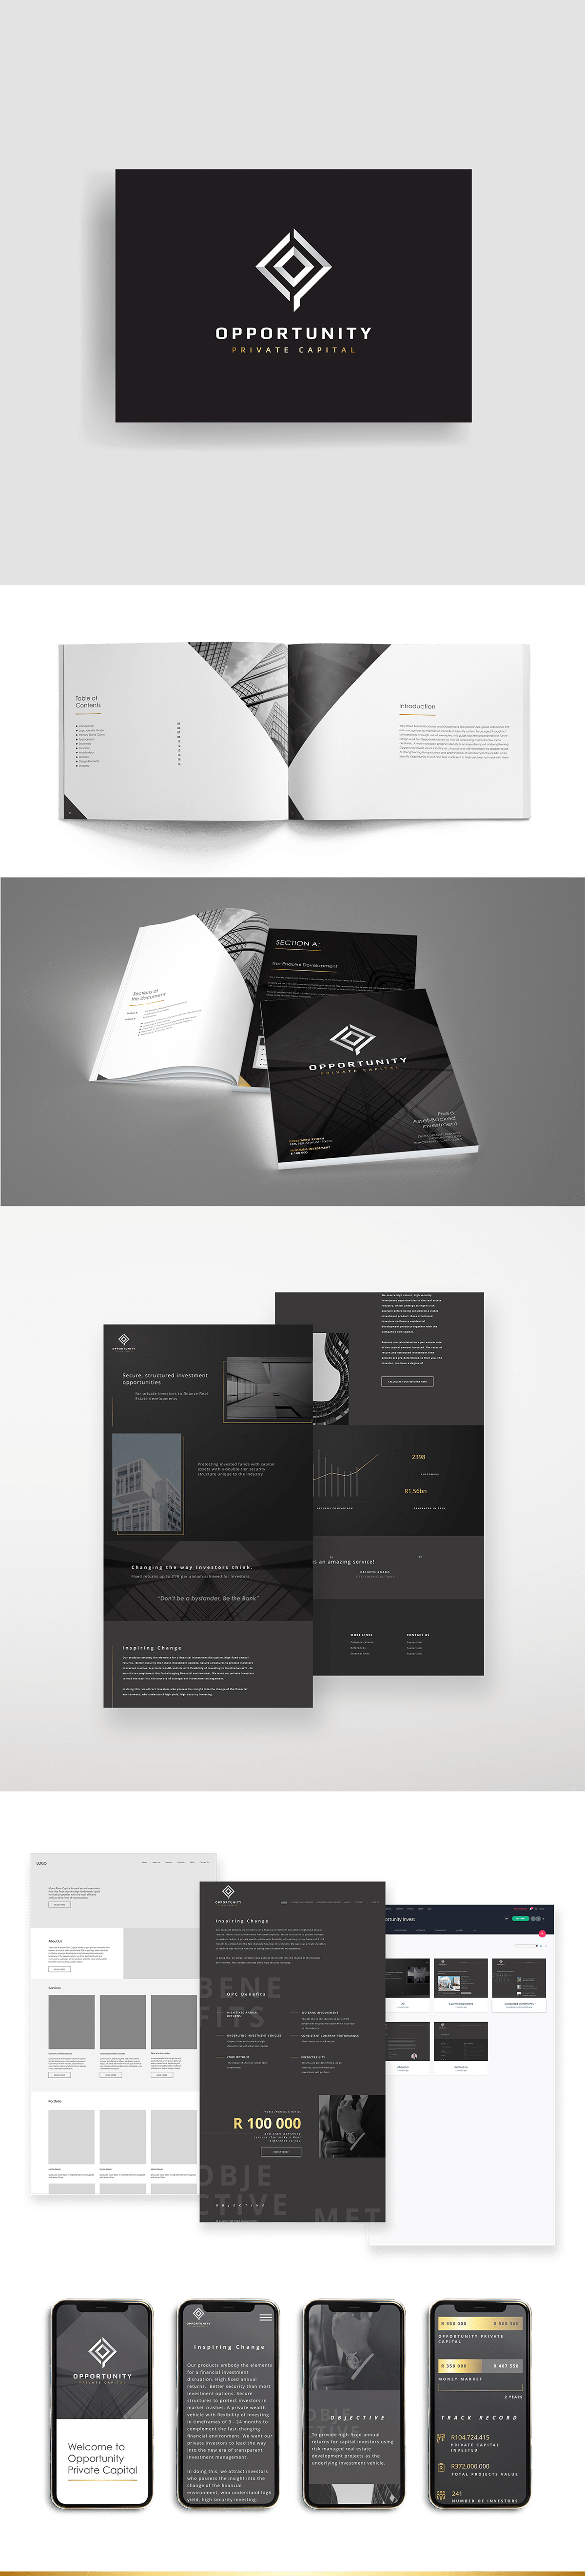 Brand guides branding  brochures Events Layout magazines presentations print Signage social media